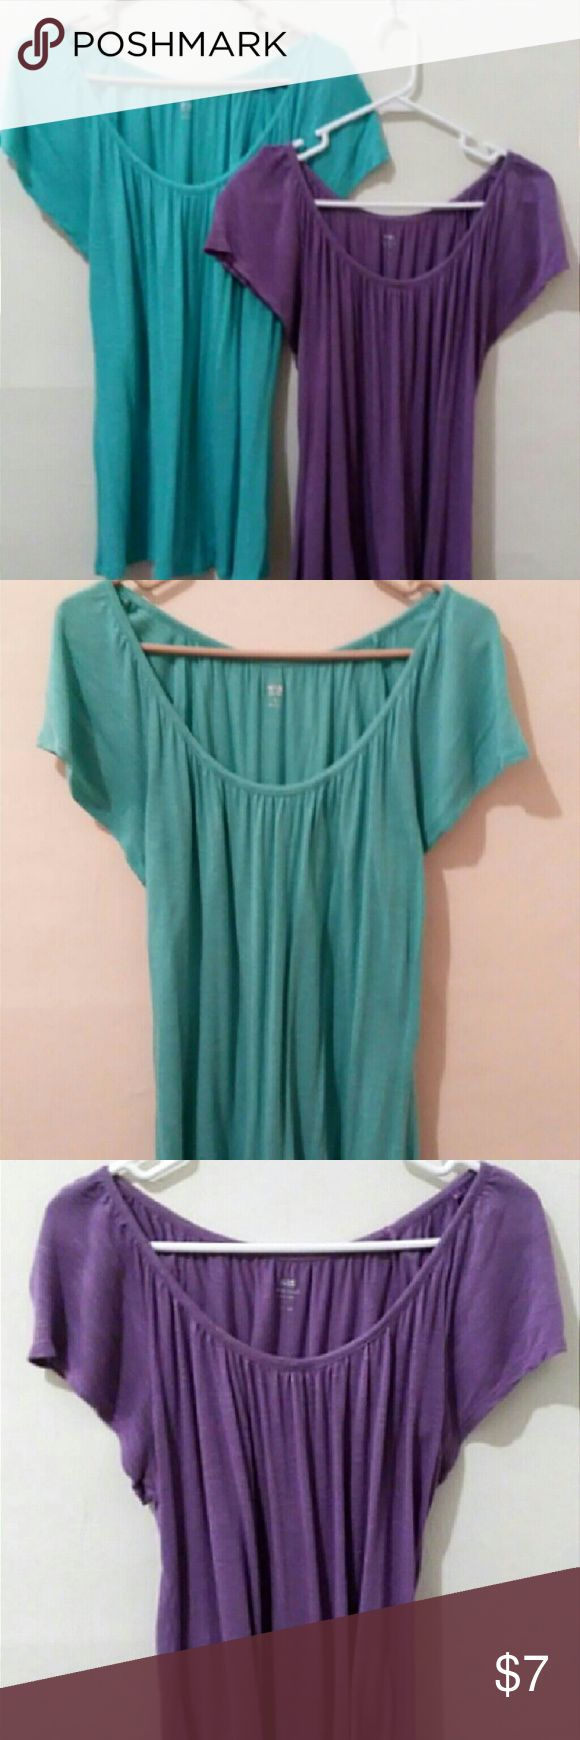 Flowing Blouse Scoop Neck - 100% rayon - Short-sleeved  1 available in colors shown (purple, aqua blue) Apt. 9 Tops Blouses